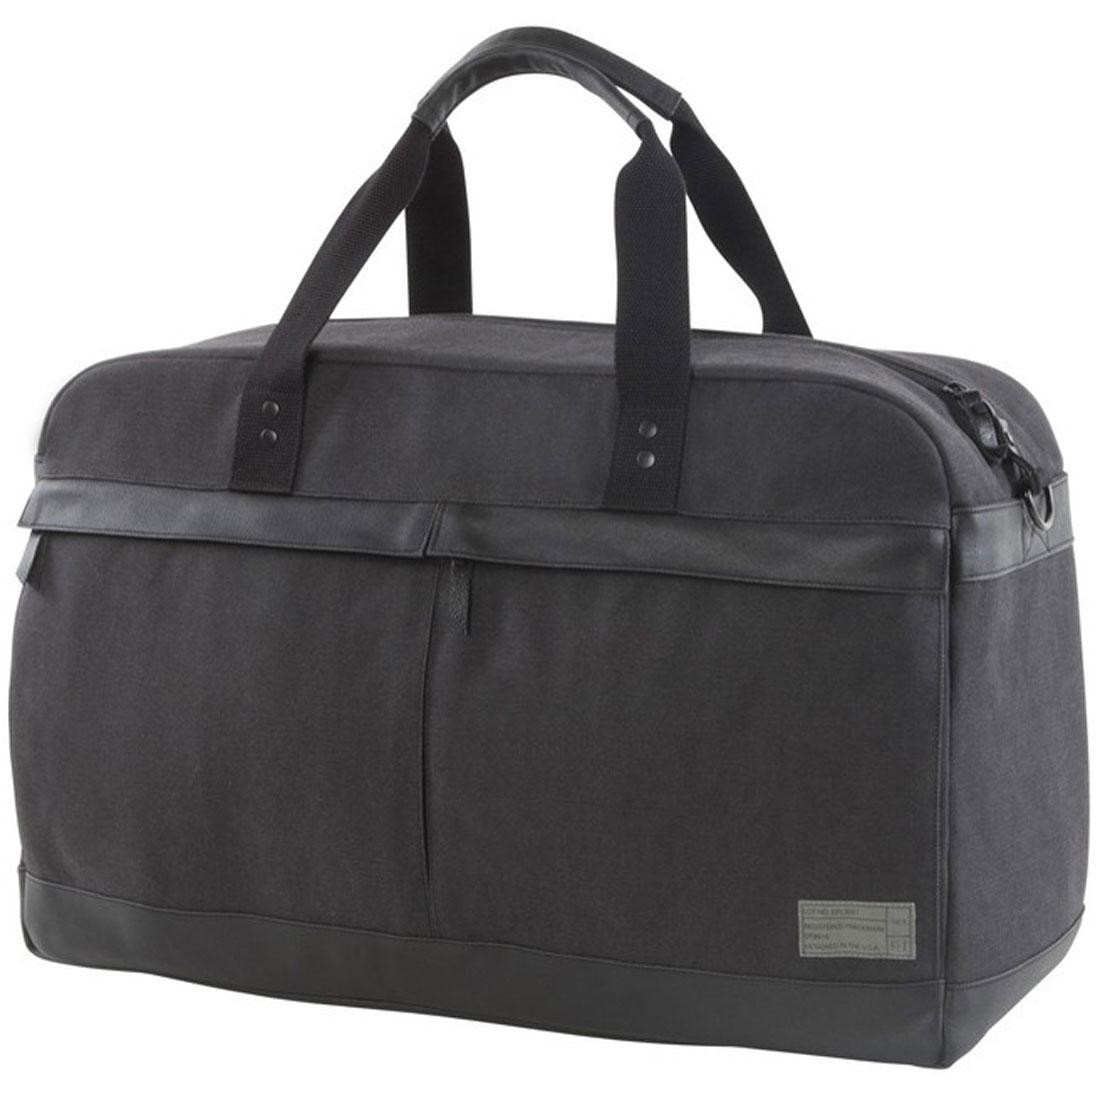 Hex Weekender Canvas Travel Duffle (gray / charcoal)